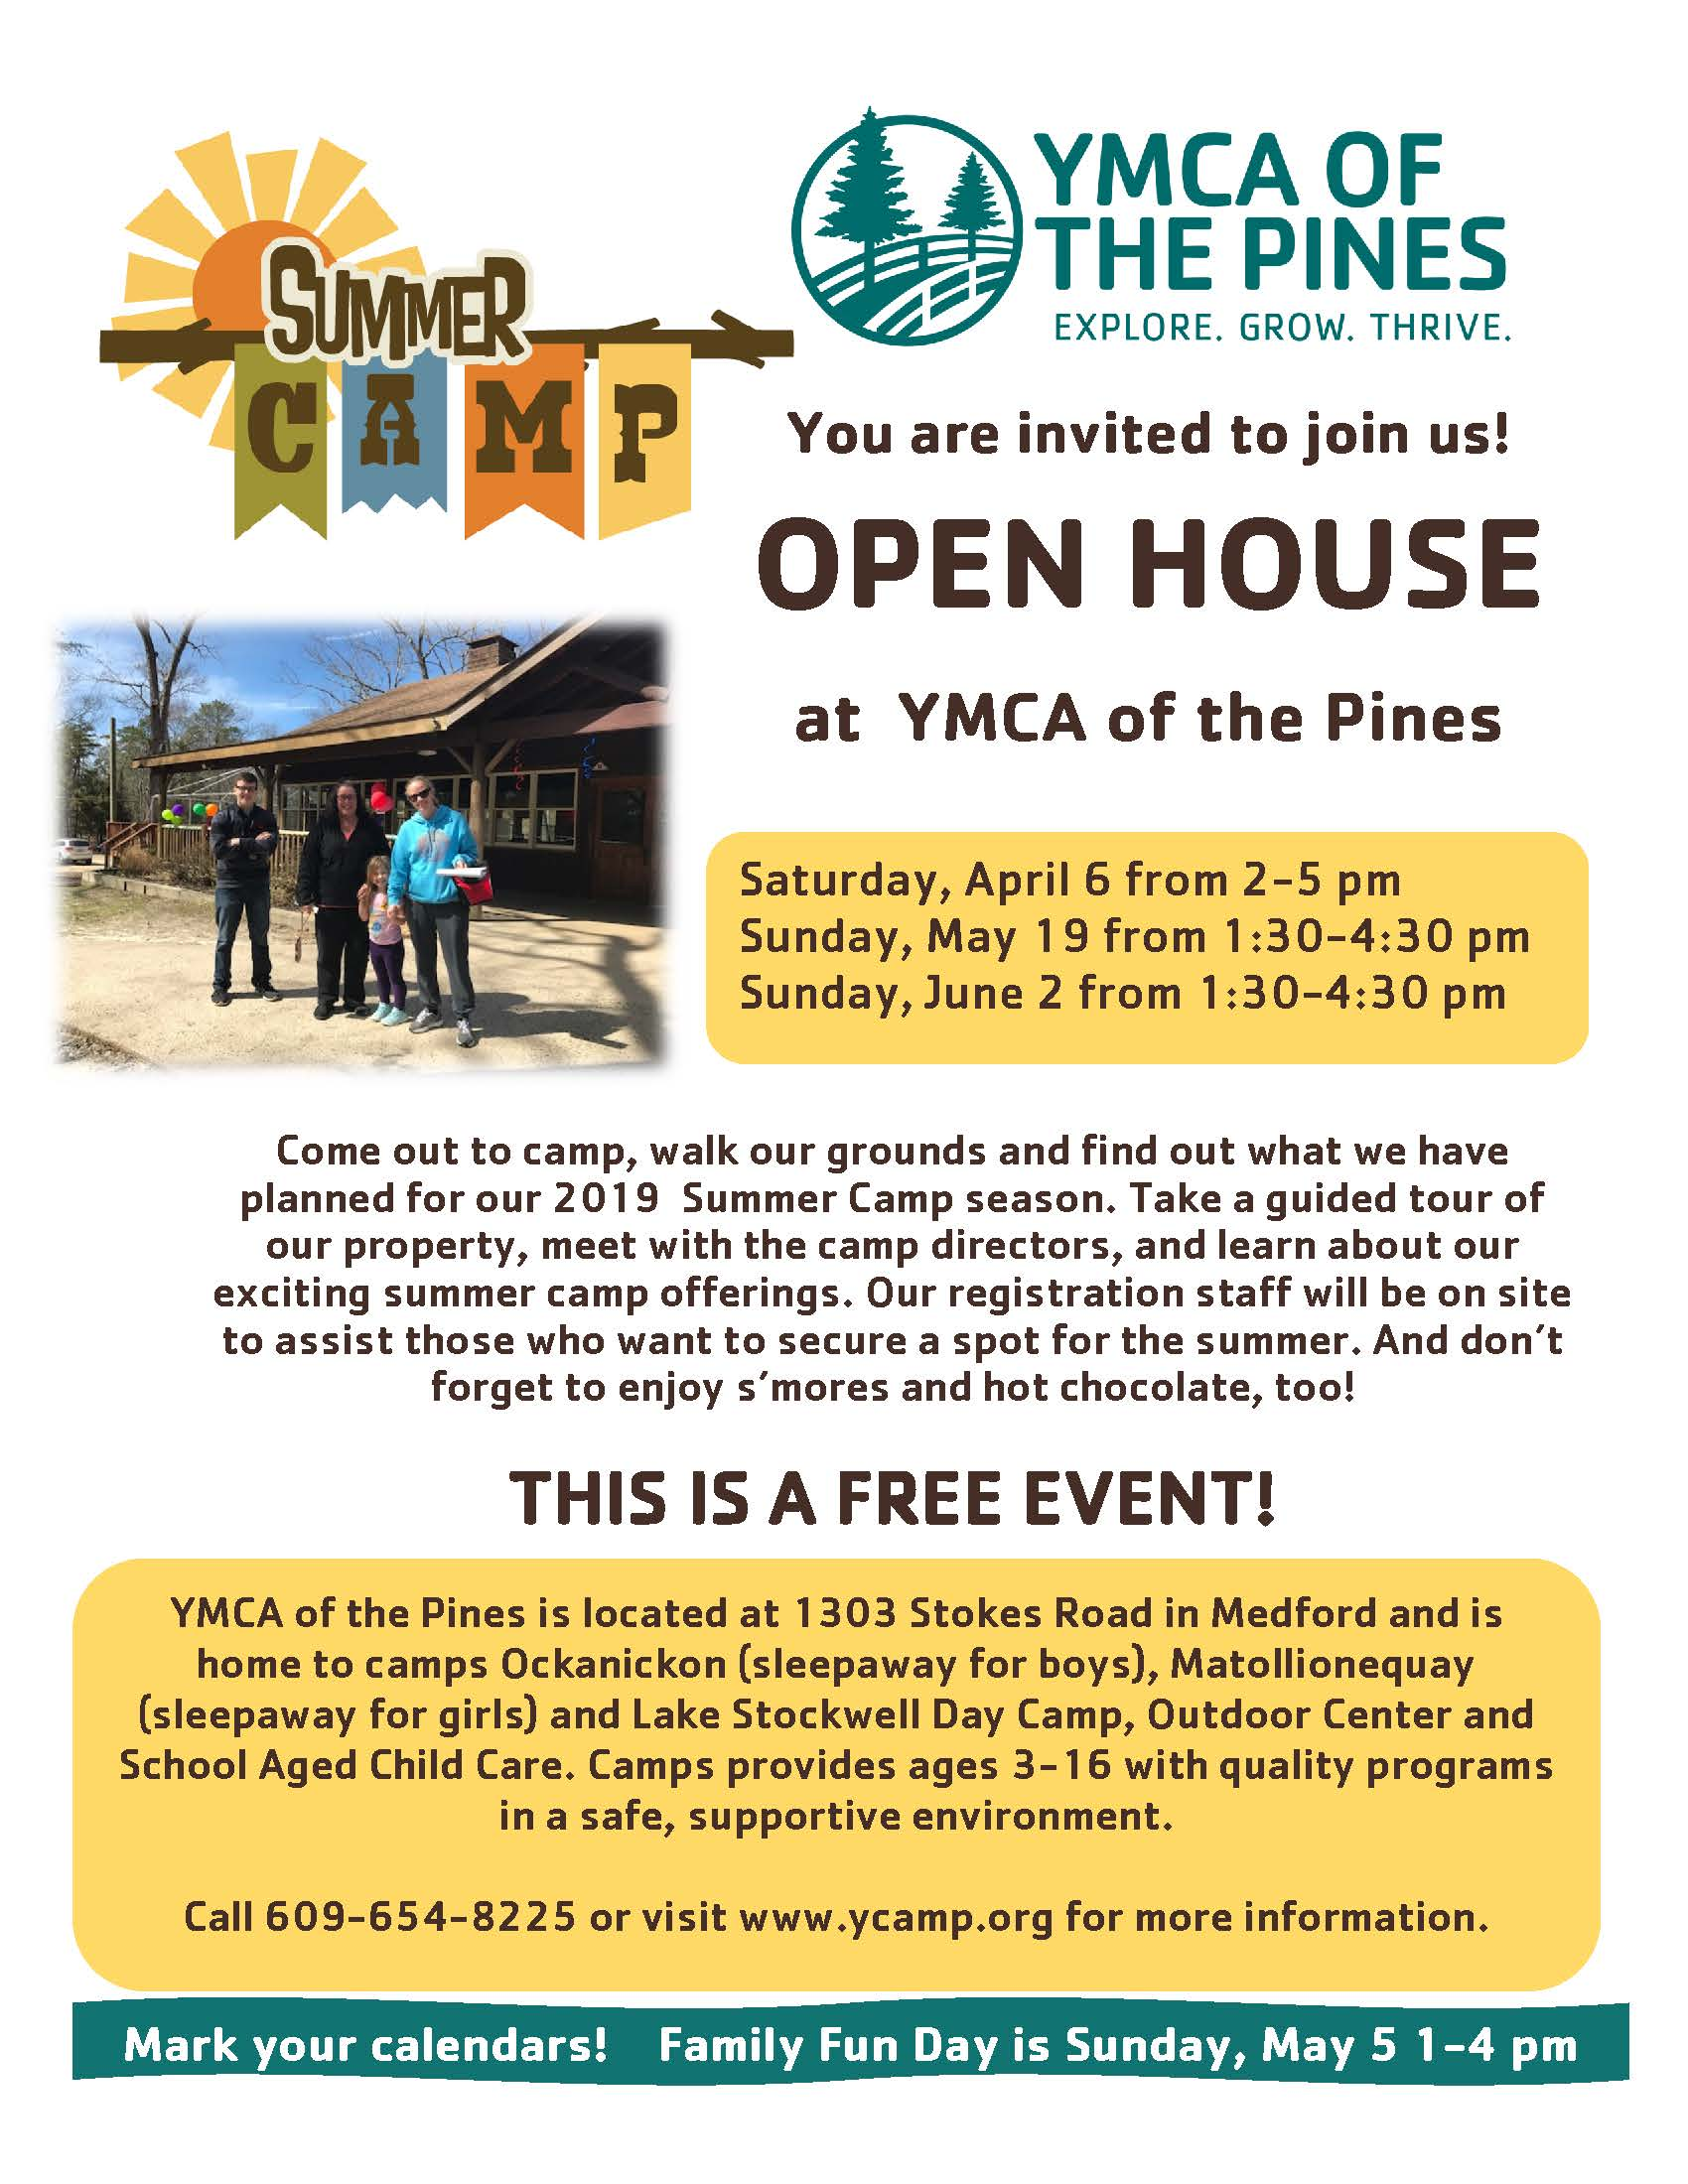 Open House - YMCA OF THE PINES